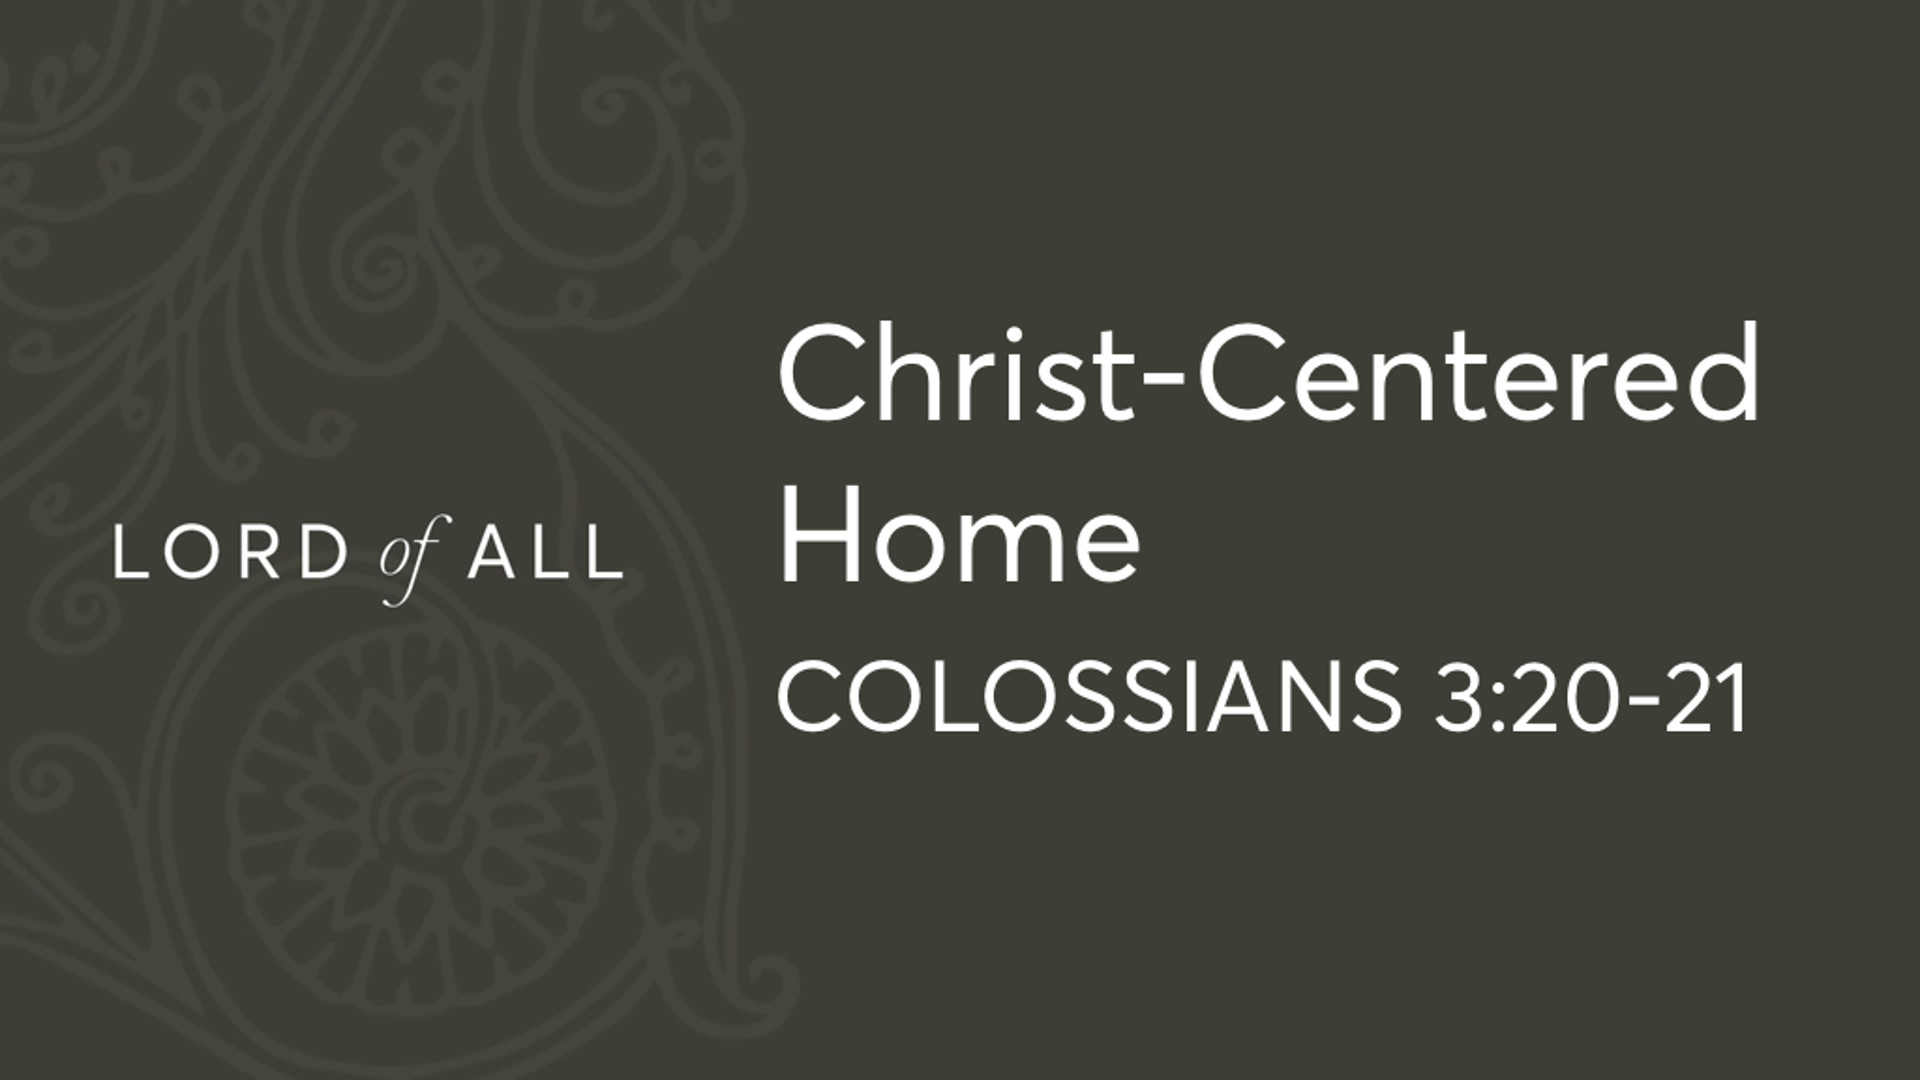 Col 3.20-21 - Christ-Centered Home.jpg